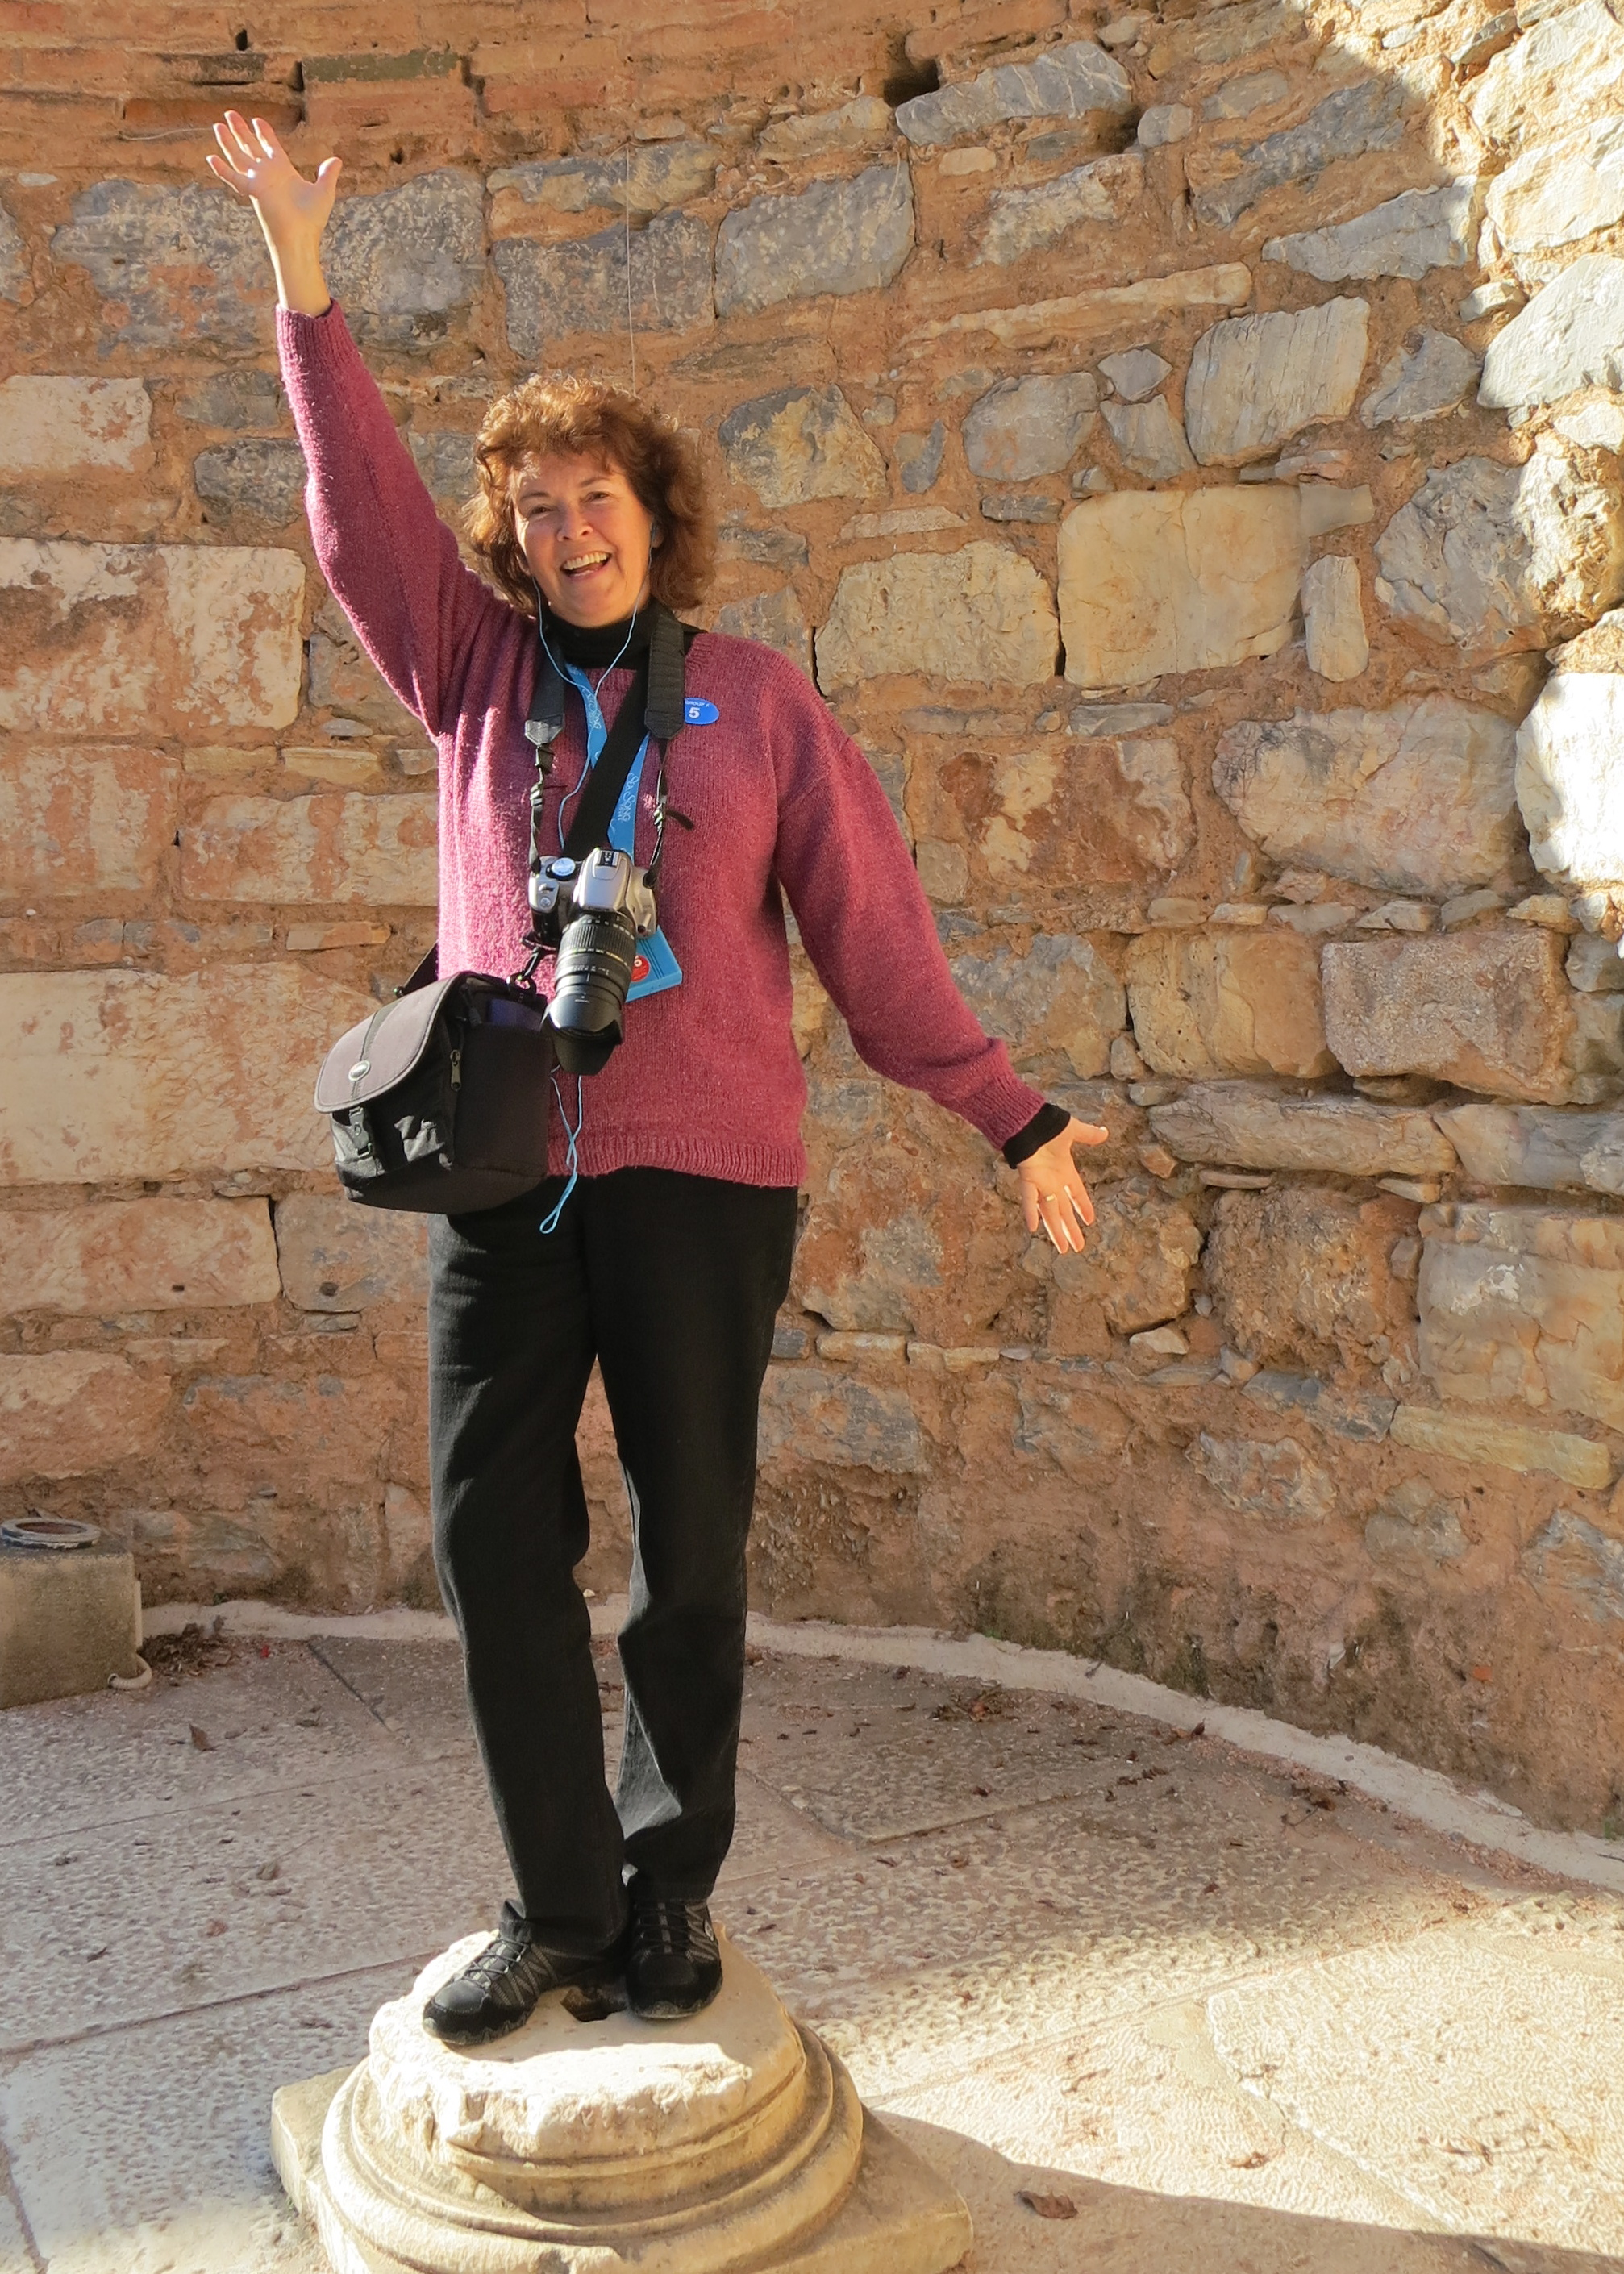 My wife Peggy, another powerful woman, poses on a pedestal inside the Library of Celsus that may have once accommodated the Greek goddess Athena. I didn't tell Peggy she was dancing on the grave of Celsus.